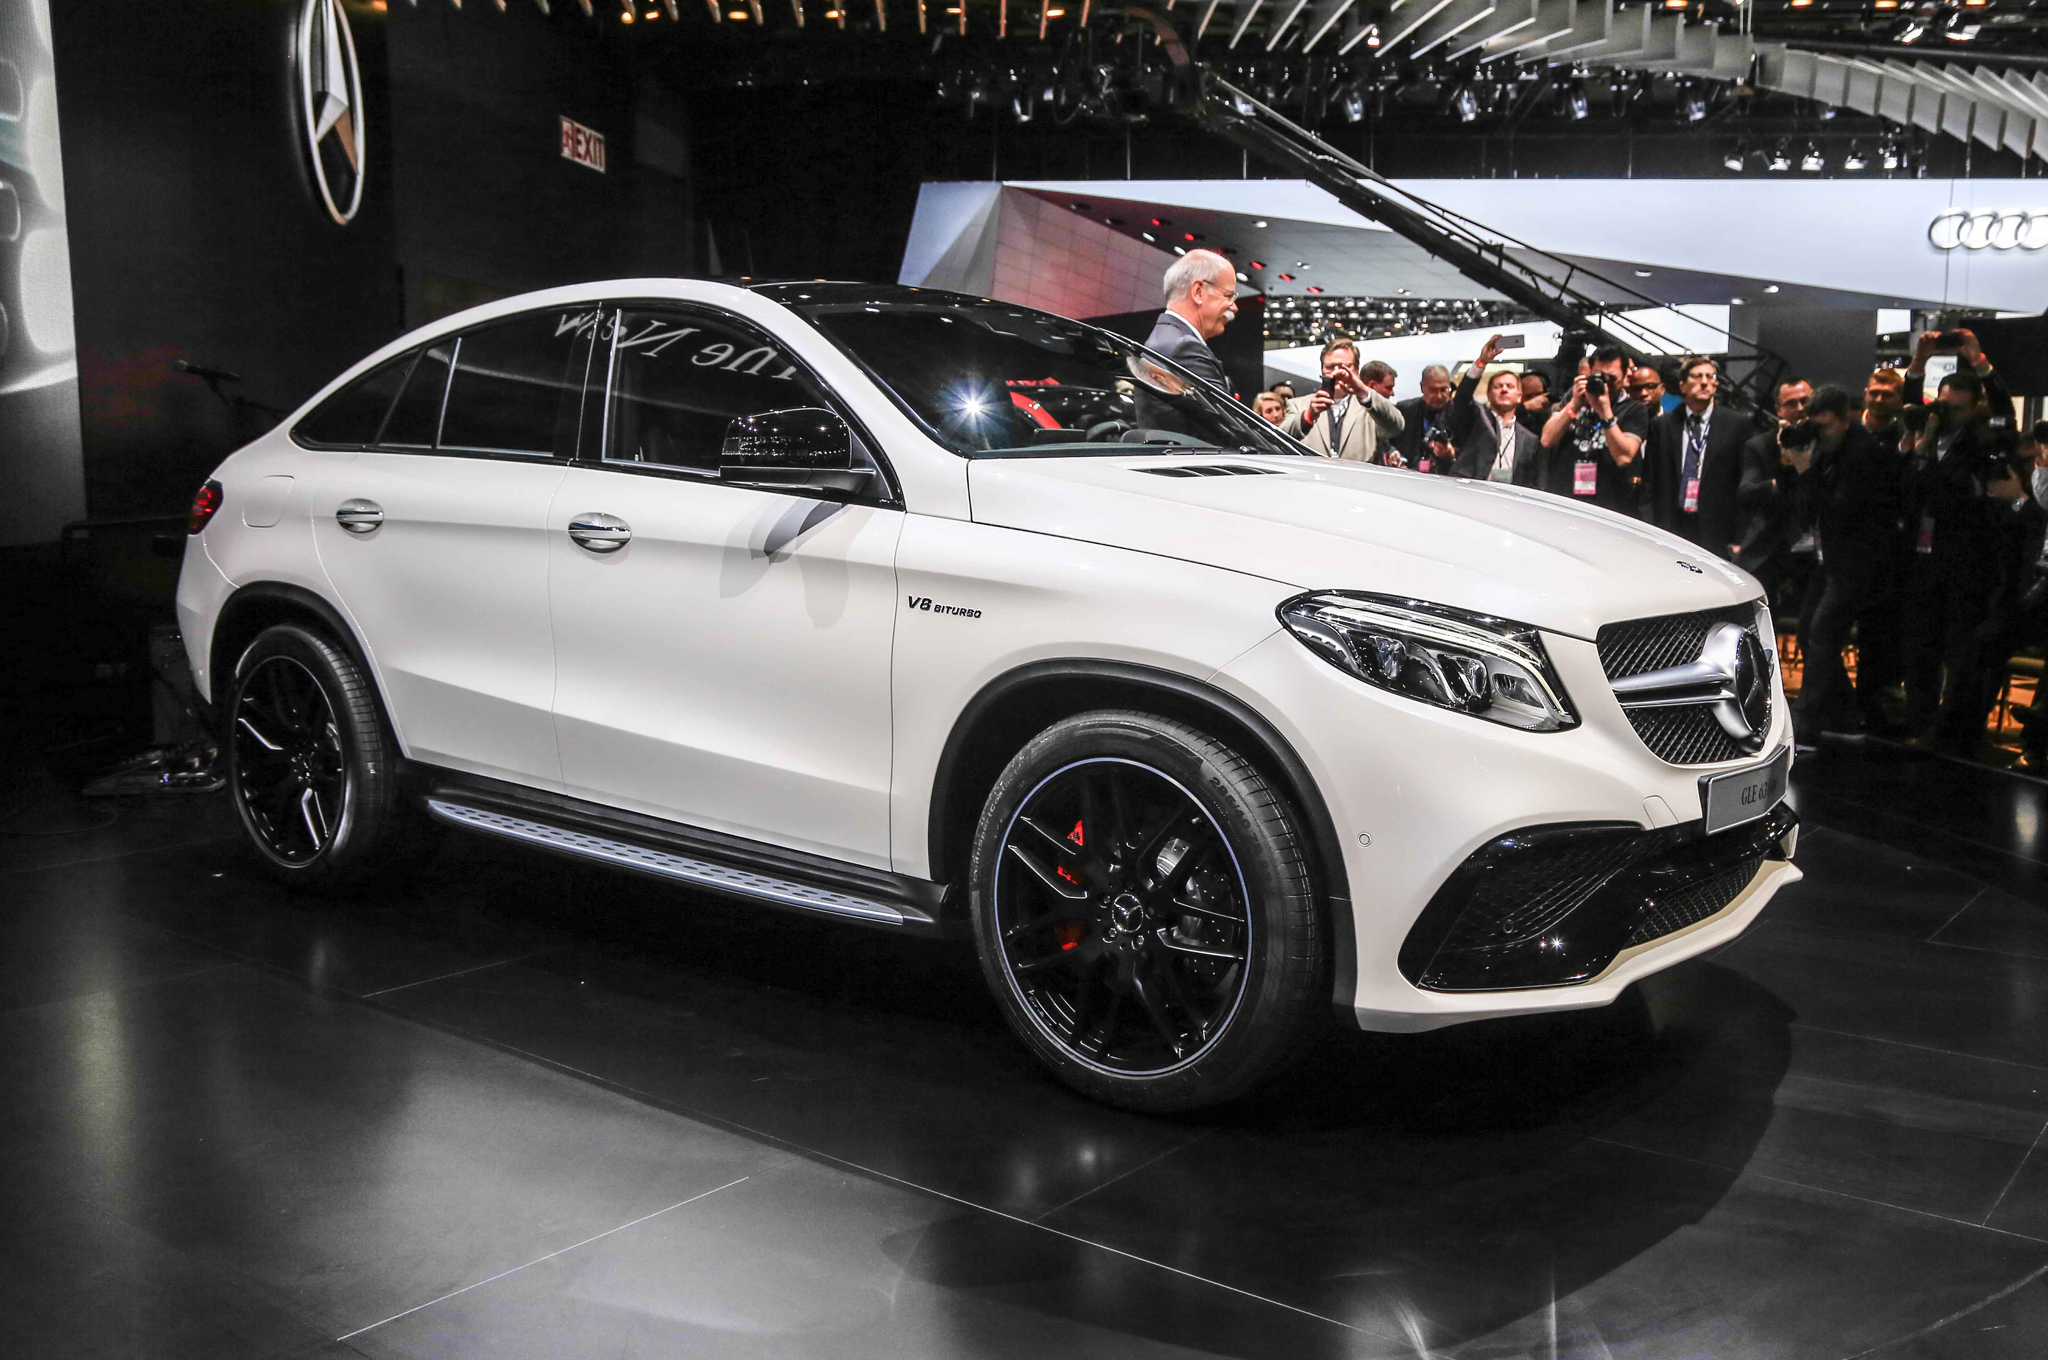 http://gtautoperformance.com/wp-content/uploads/2015/08/2016-Mercedes-Benz-AMG-GLE63s-Coupe-Front-Side.jpg